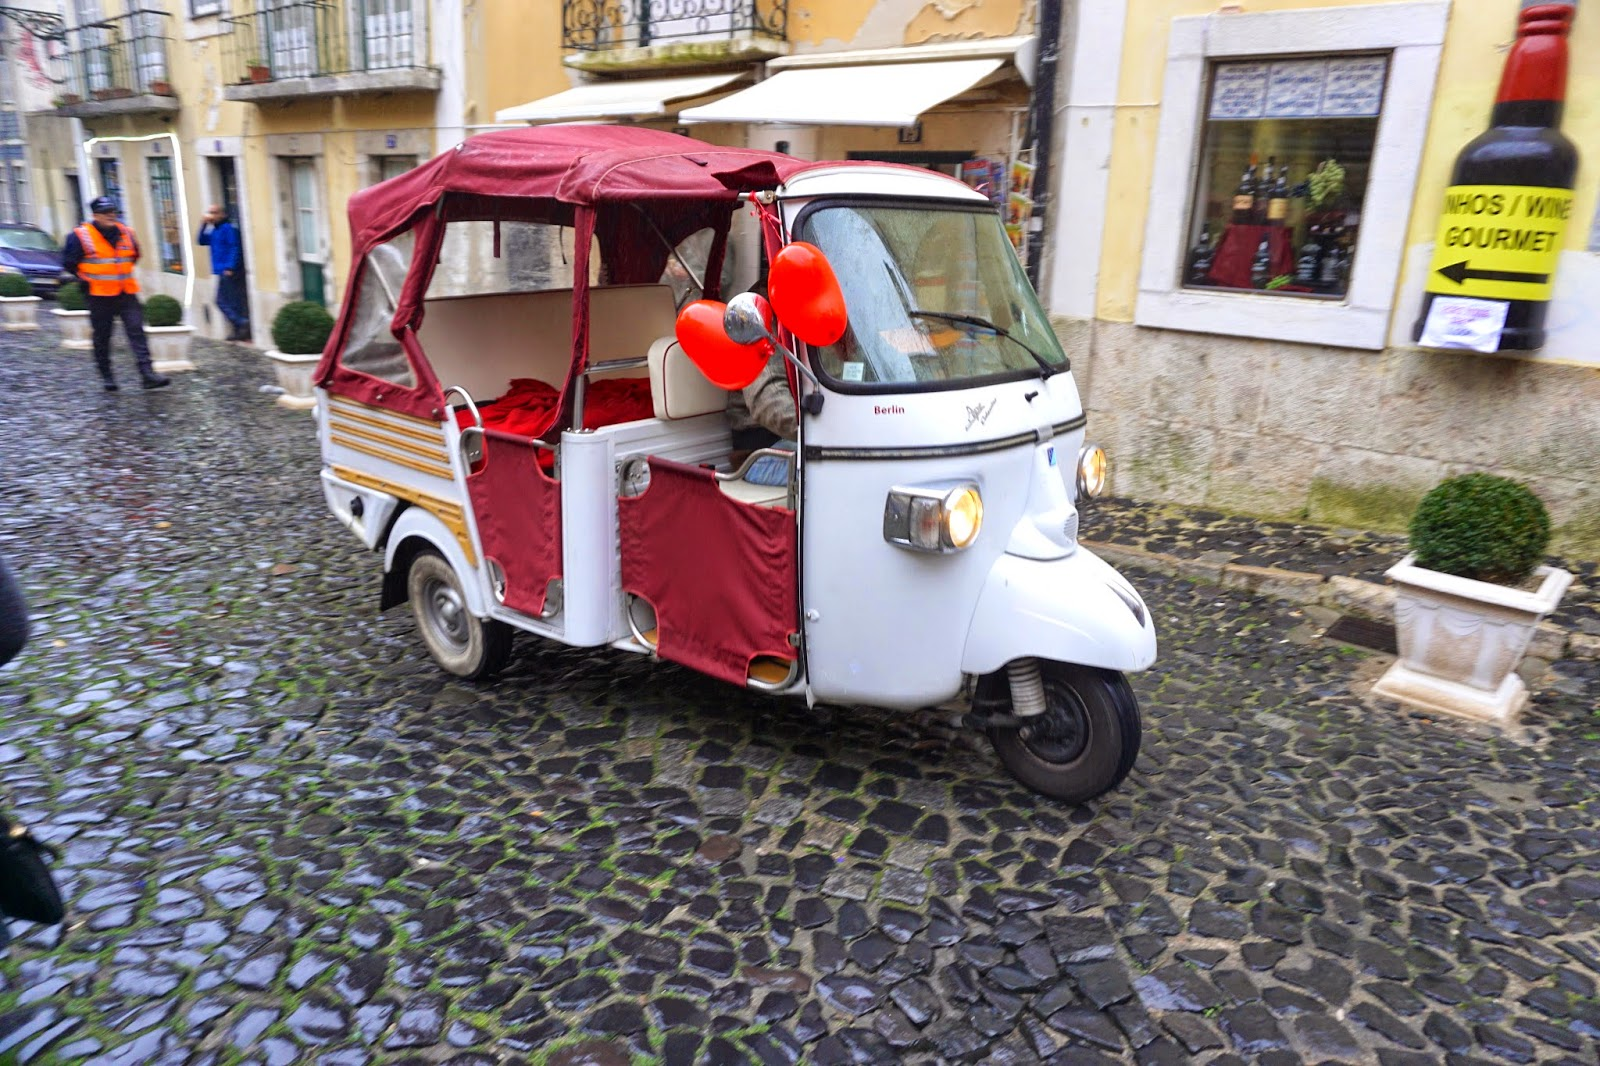 Heart decorated taxi scooter for Valentine's Day in Lisbon